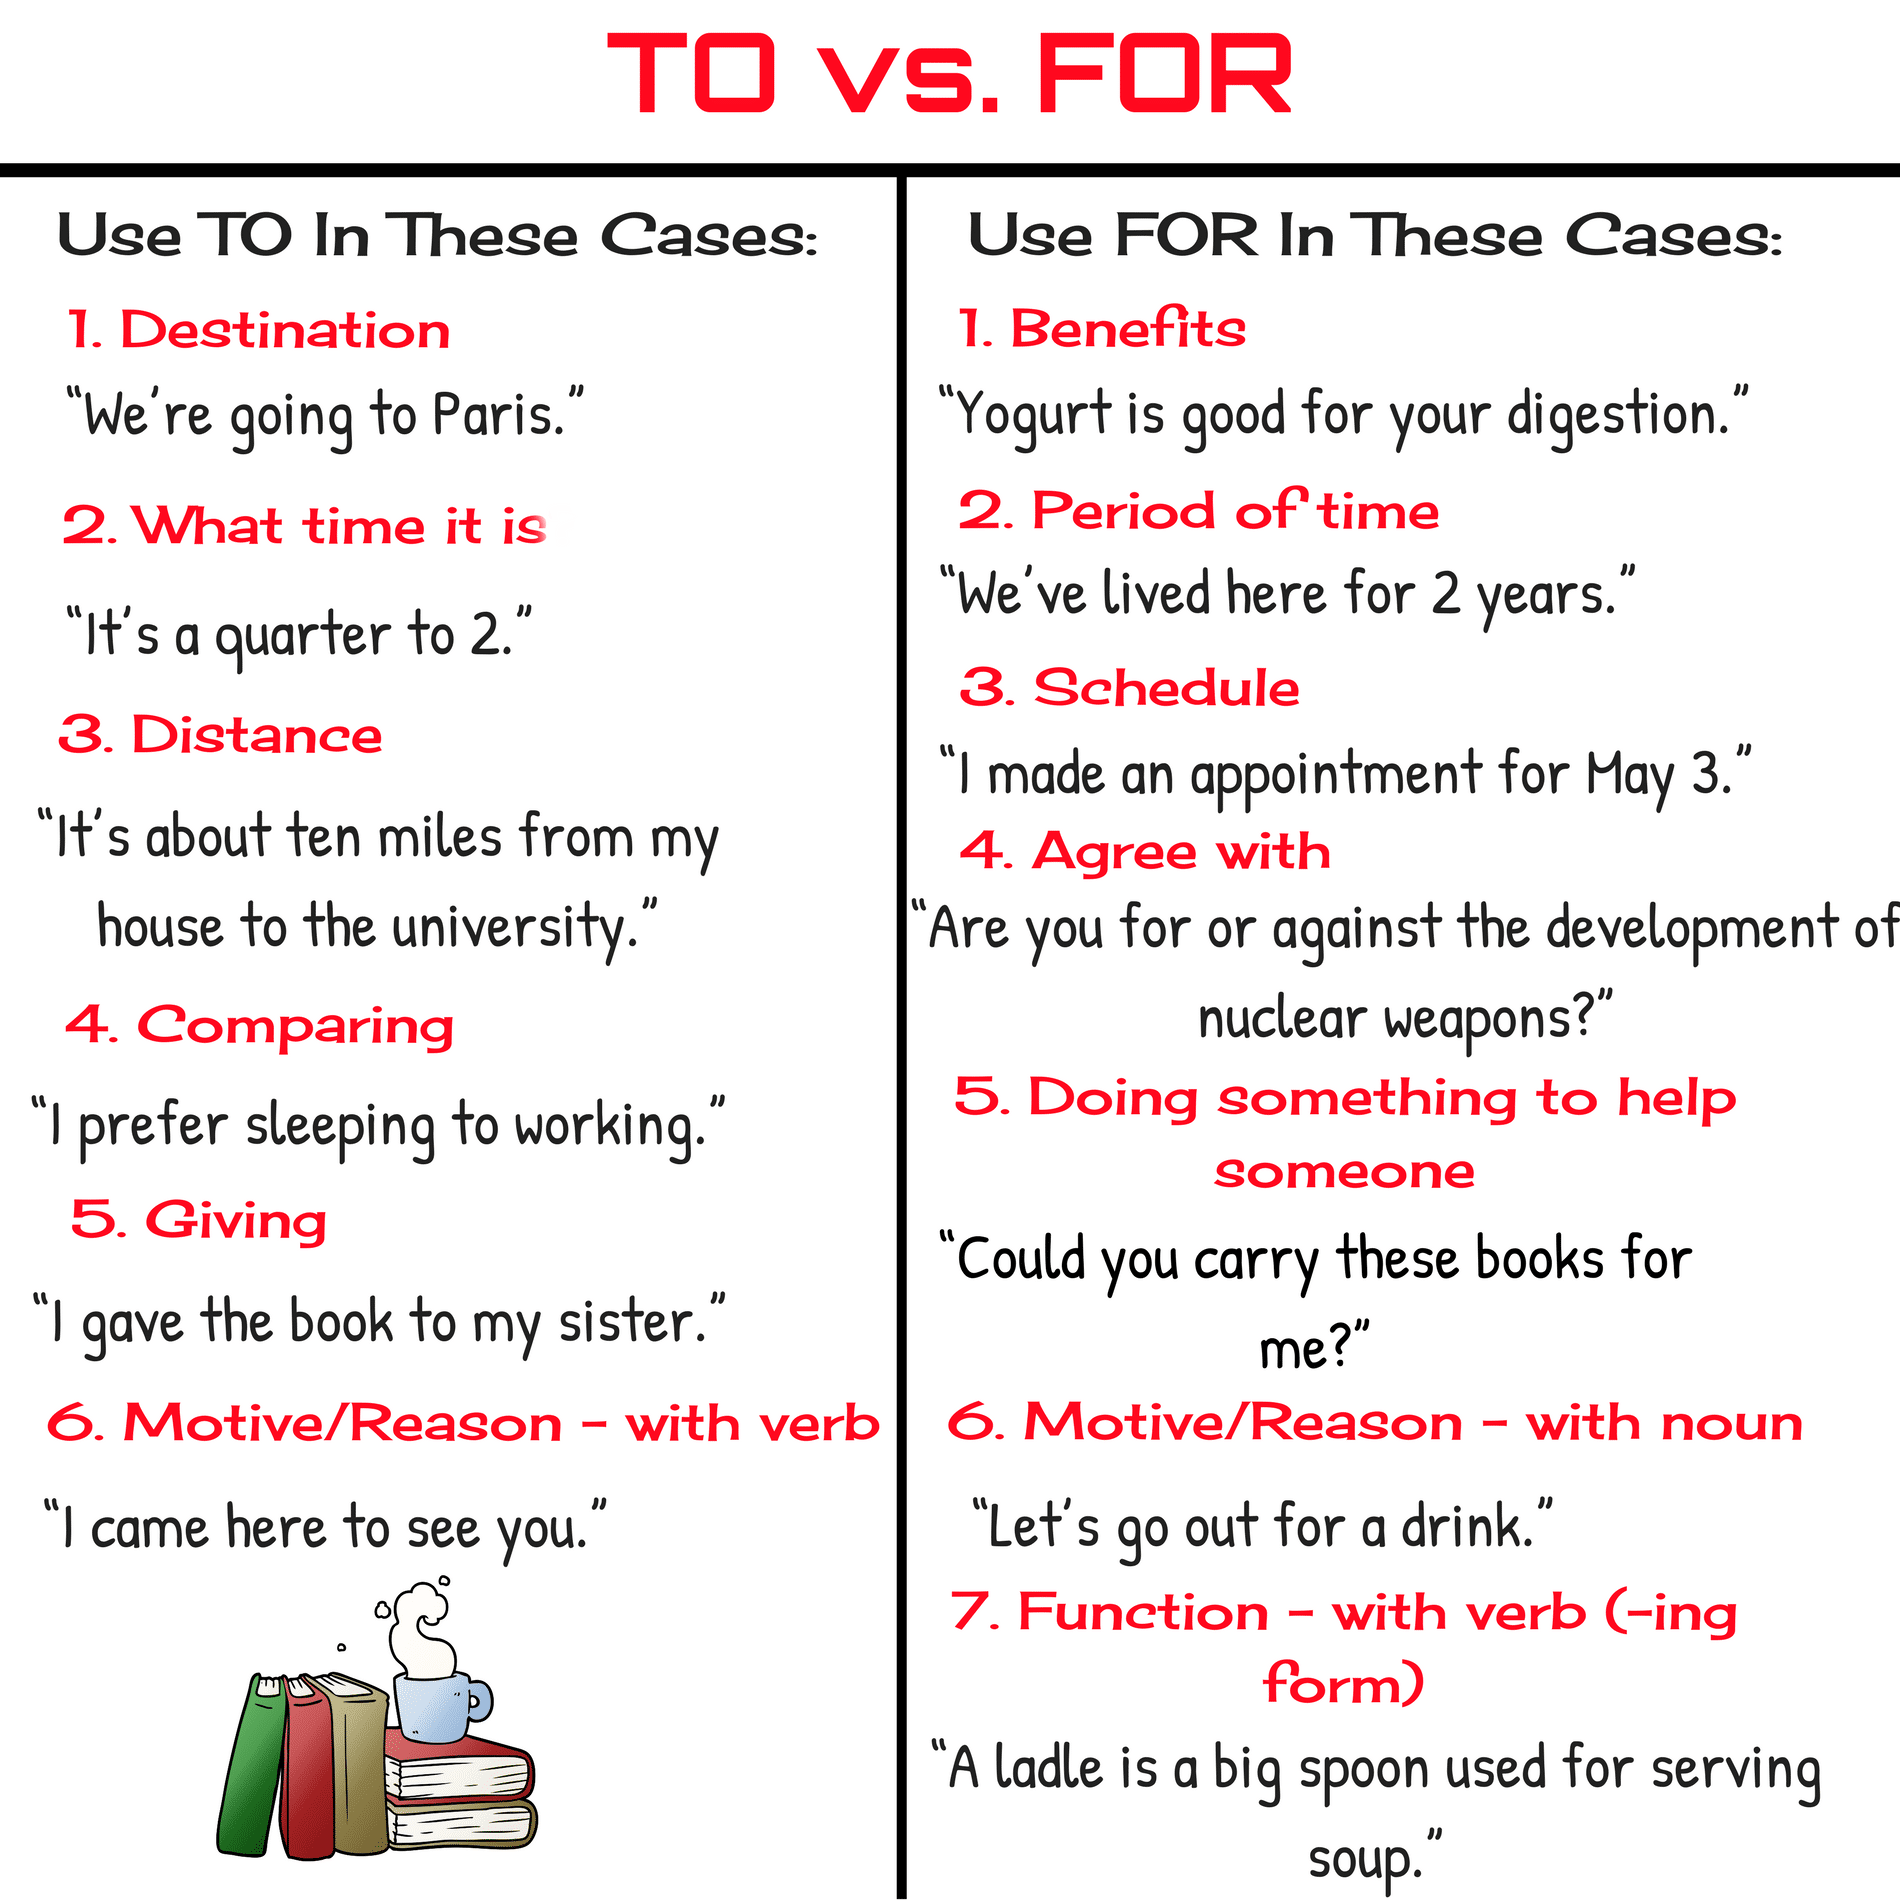 Difference between TO vs. FOR